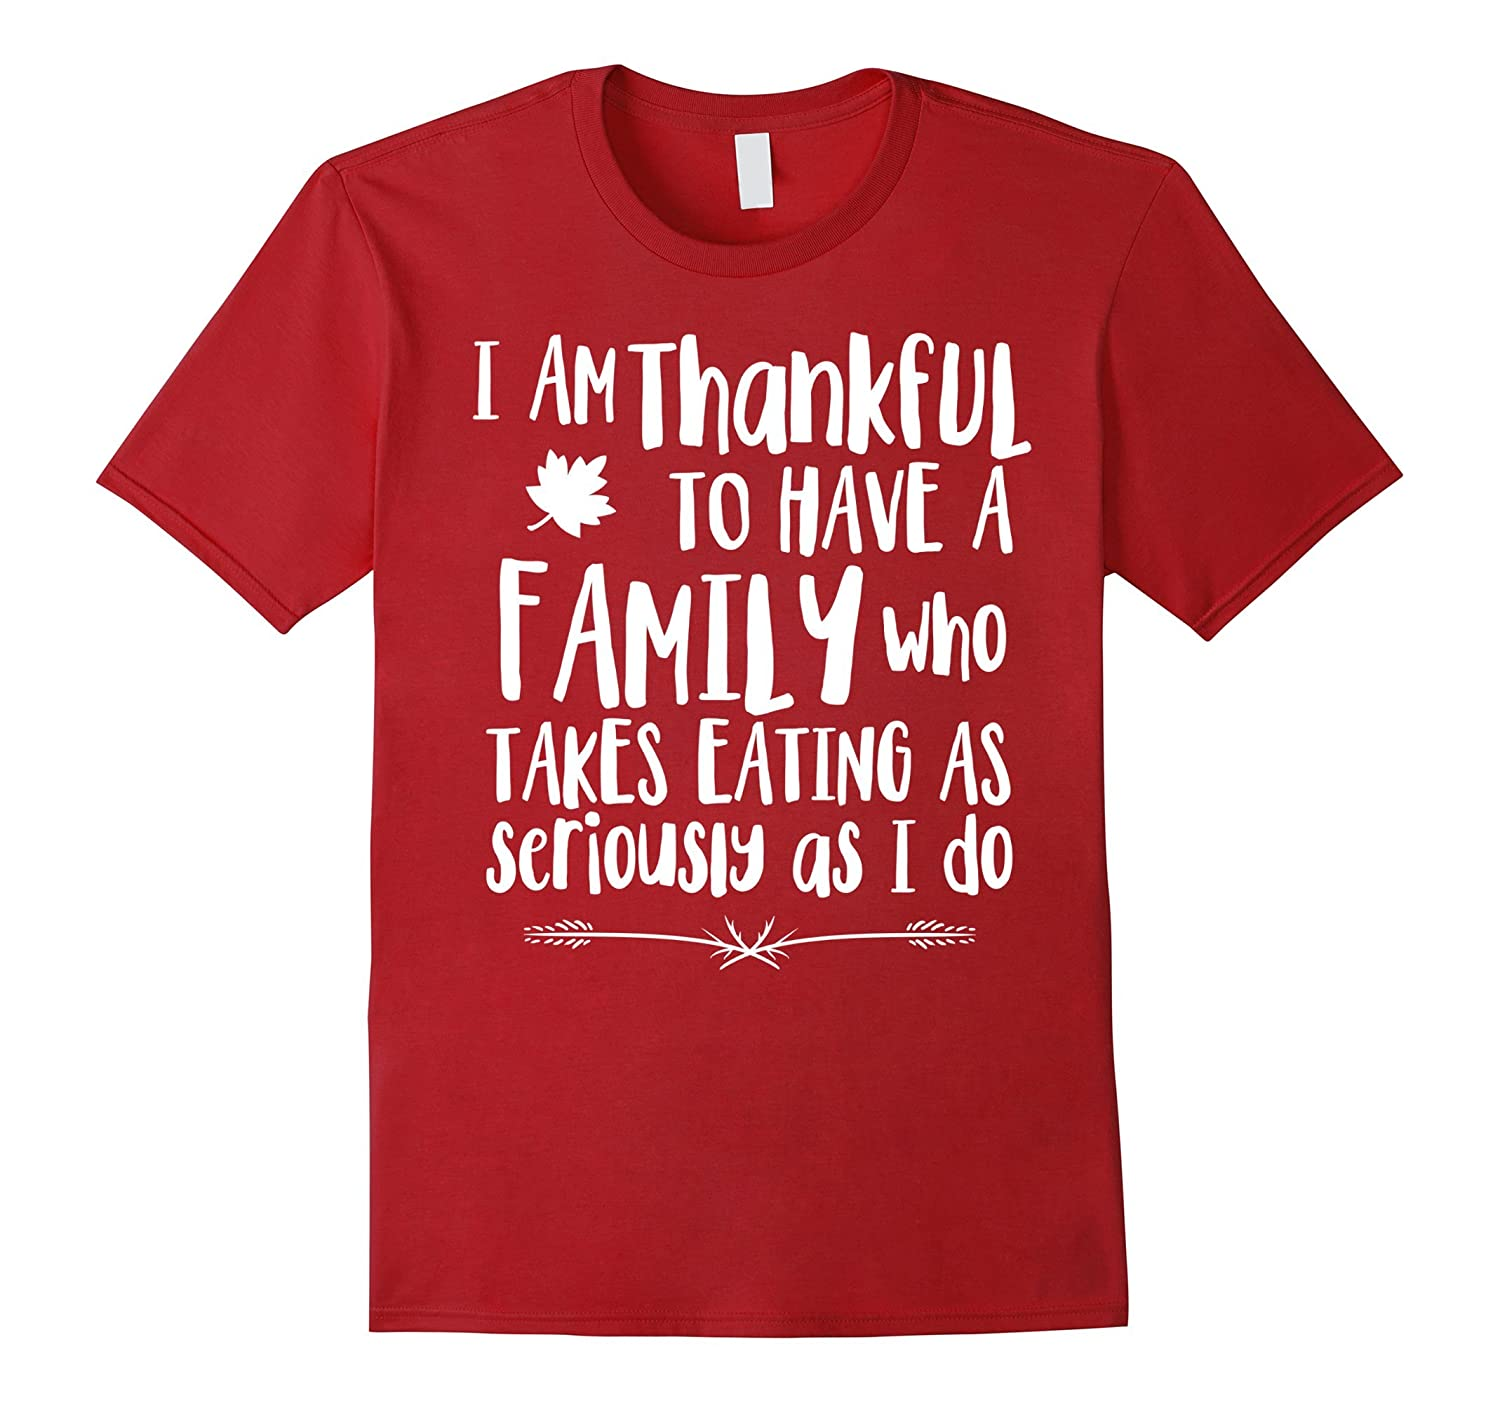 Funny Thankful Family Shirt For Thanksgiving Day-T-Shirt